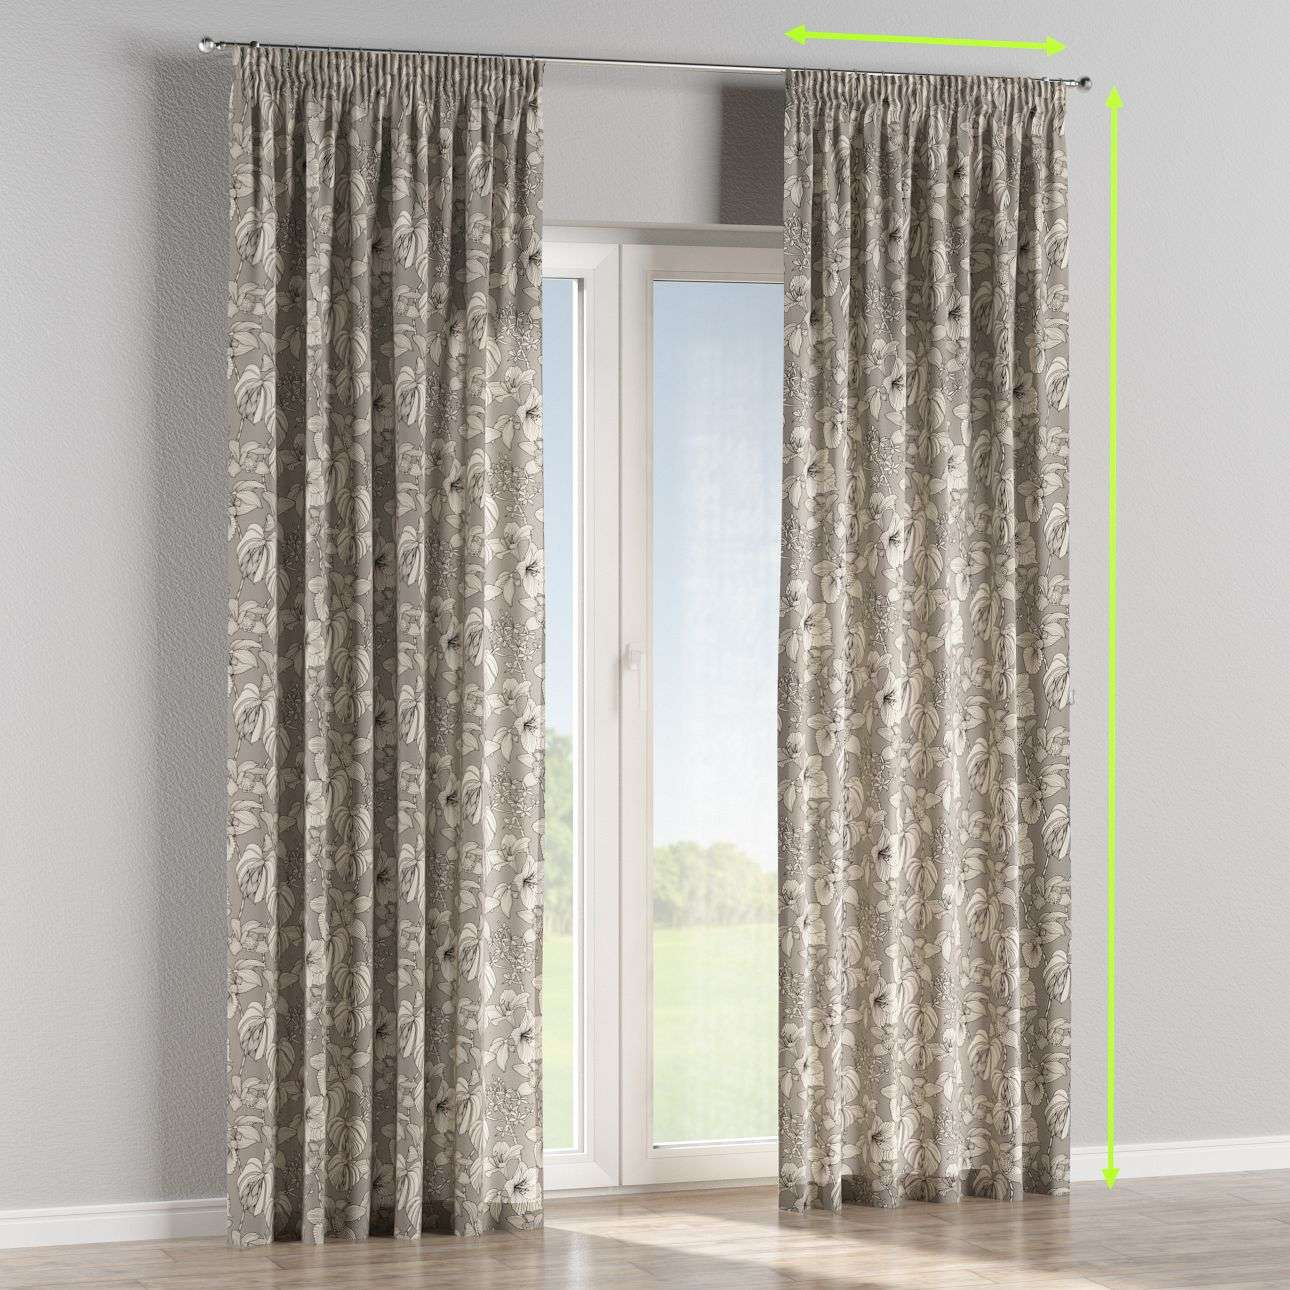 Pencil pleat lined curtains in collection Brooklyn, fabric: 137-80